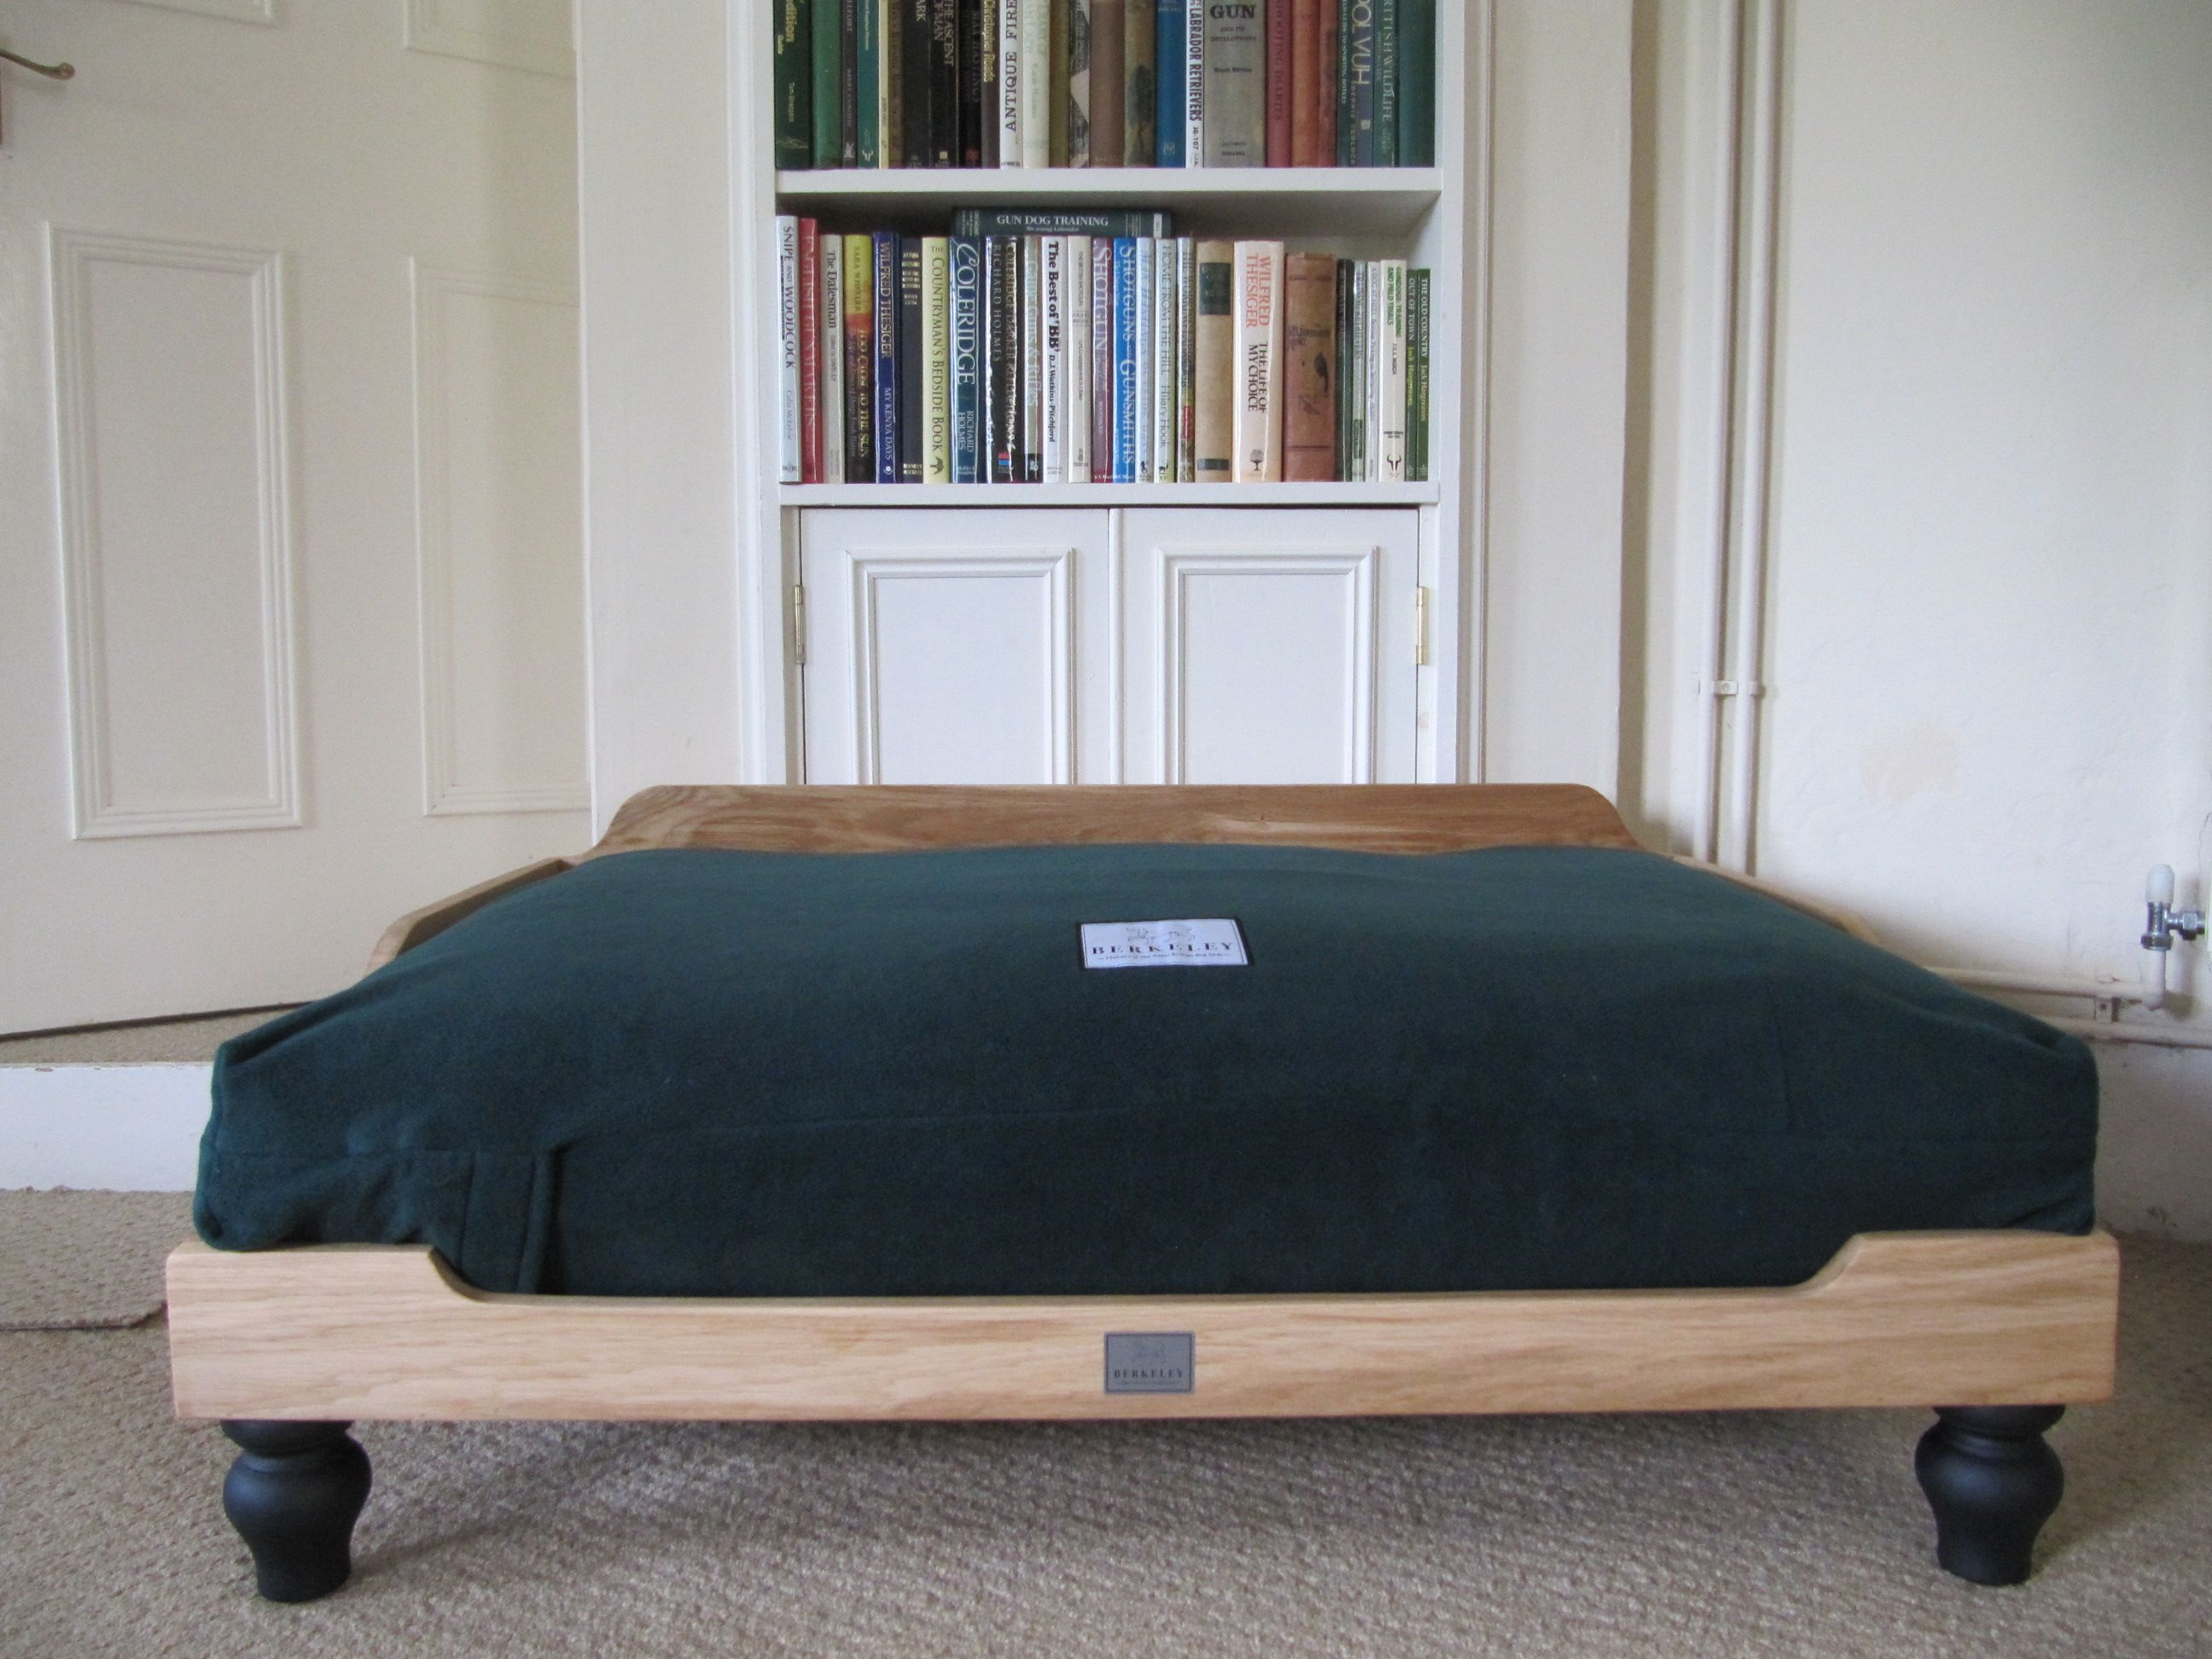 Berkeley Oak Frame Dog Bed With Waterproof Orthopaedic Mattress And Polar  Fleece Fabric Cover In Green